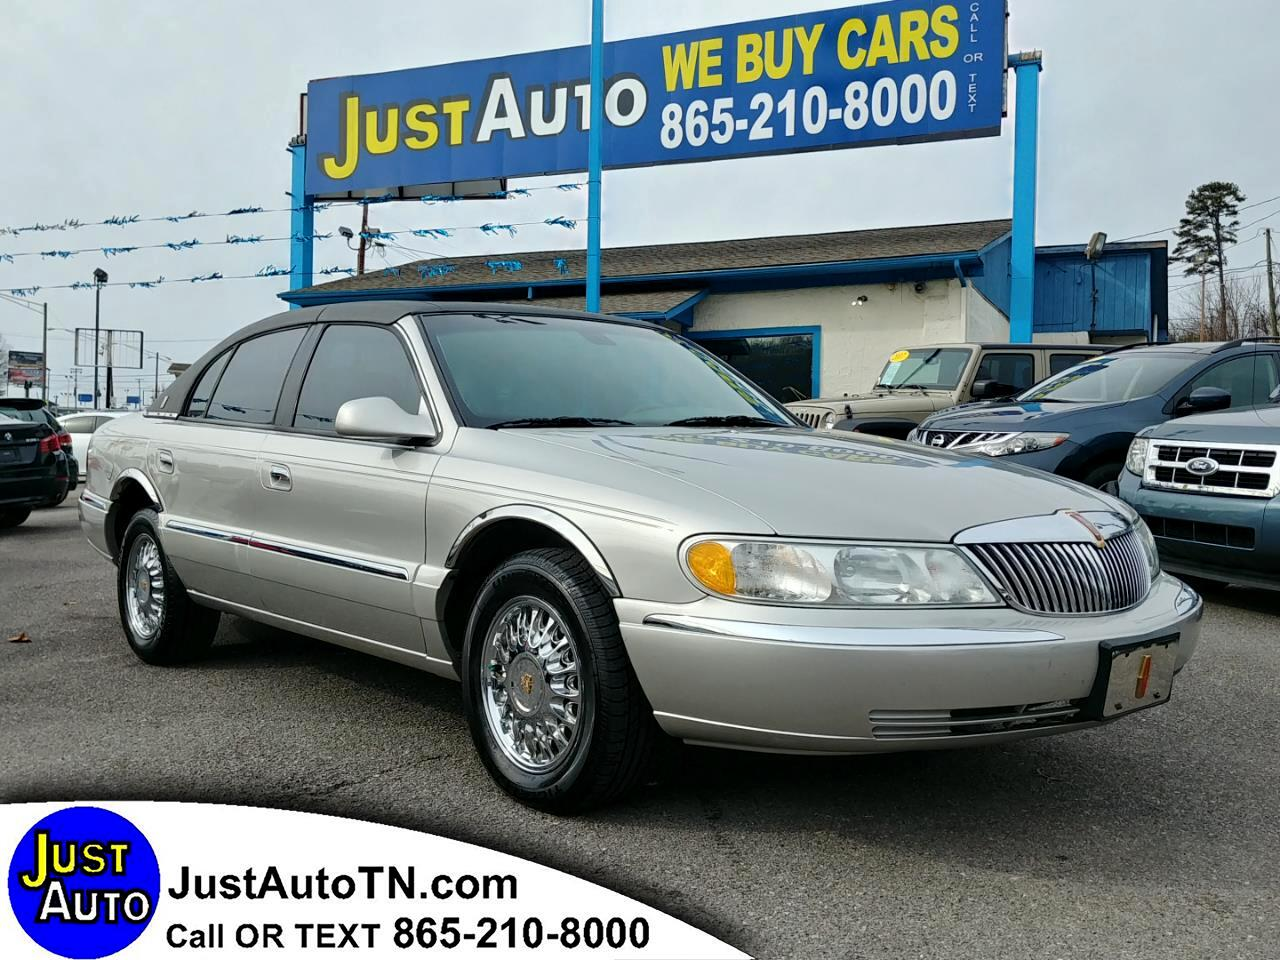 2002 Lincoln Continental 4dr Sdn w/Personal Security